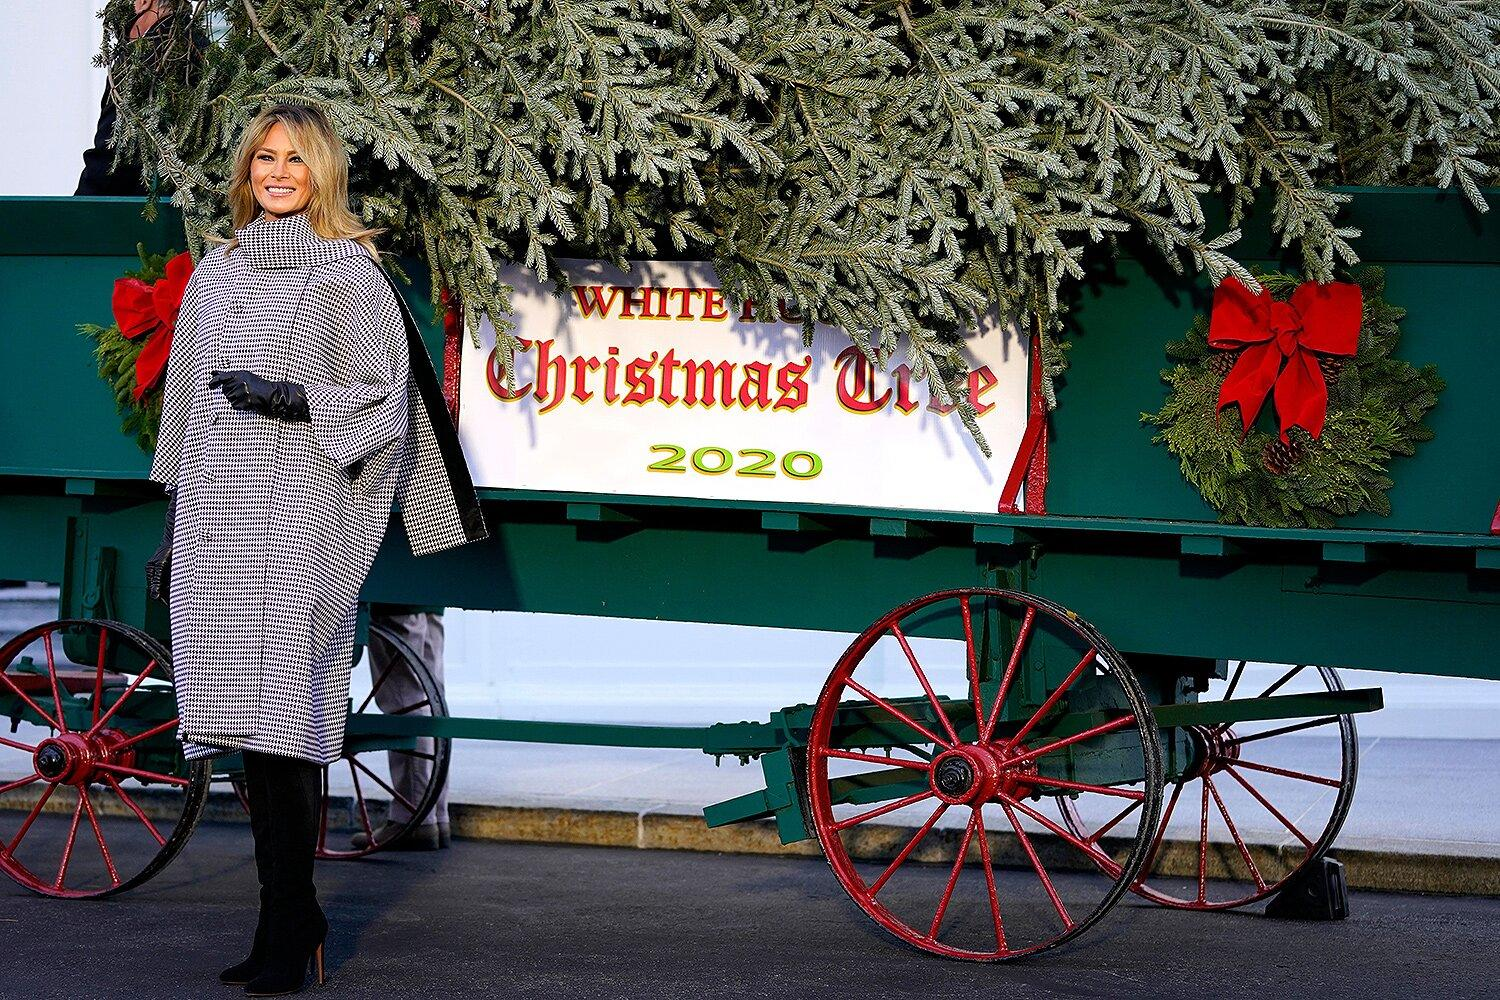 White House Christmas Pictures 2021 Melania Trump Greets White House Christmas Tree For The Last Time After Husband S Election Loss